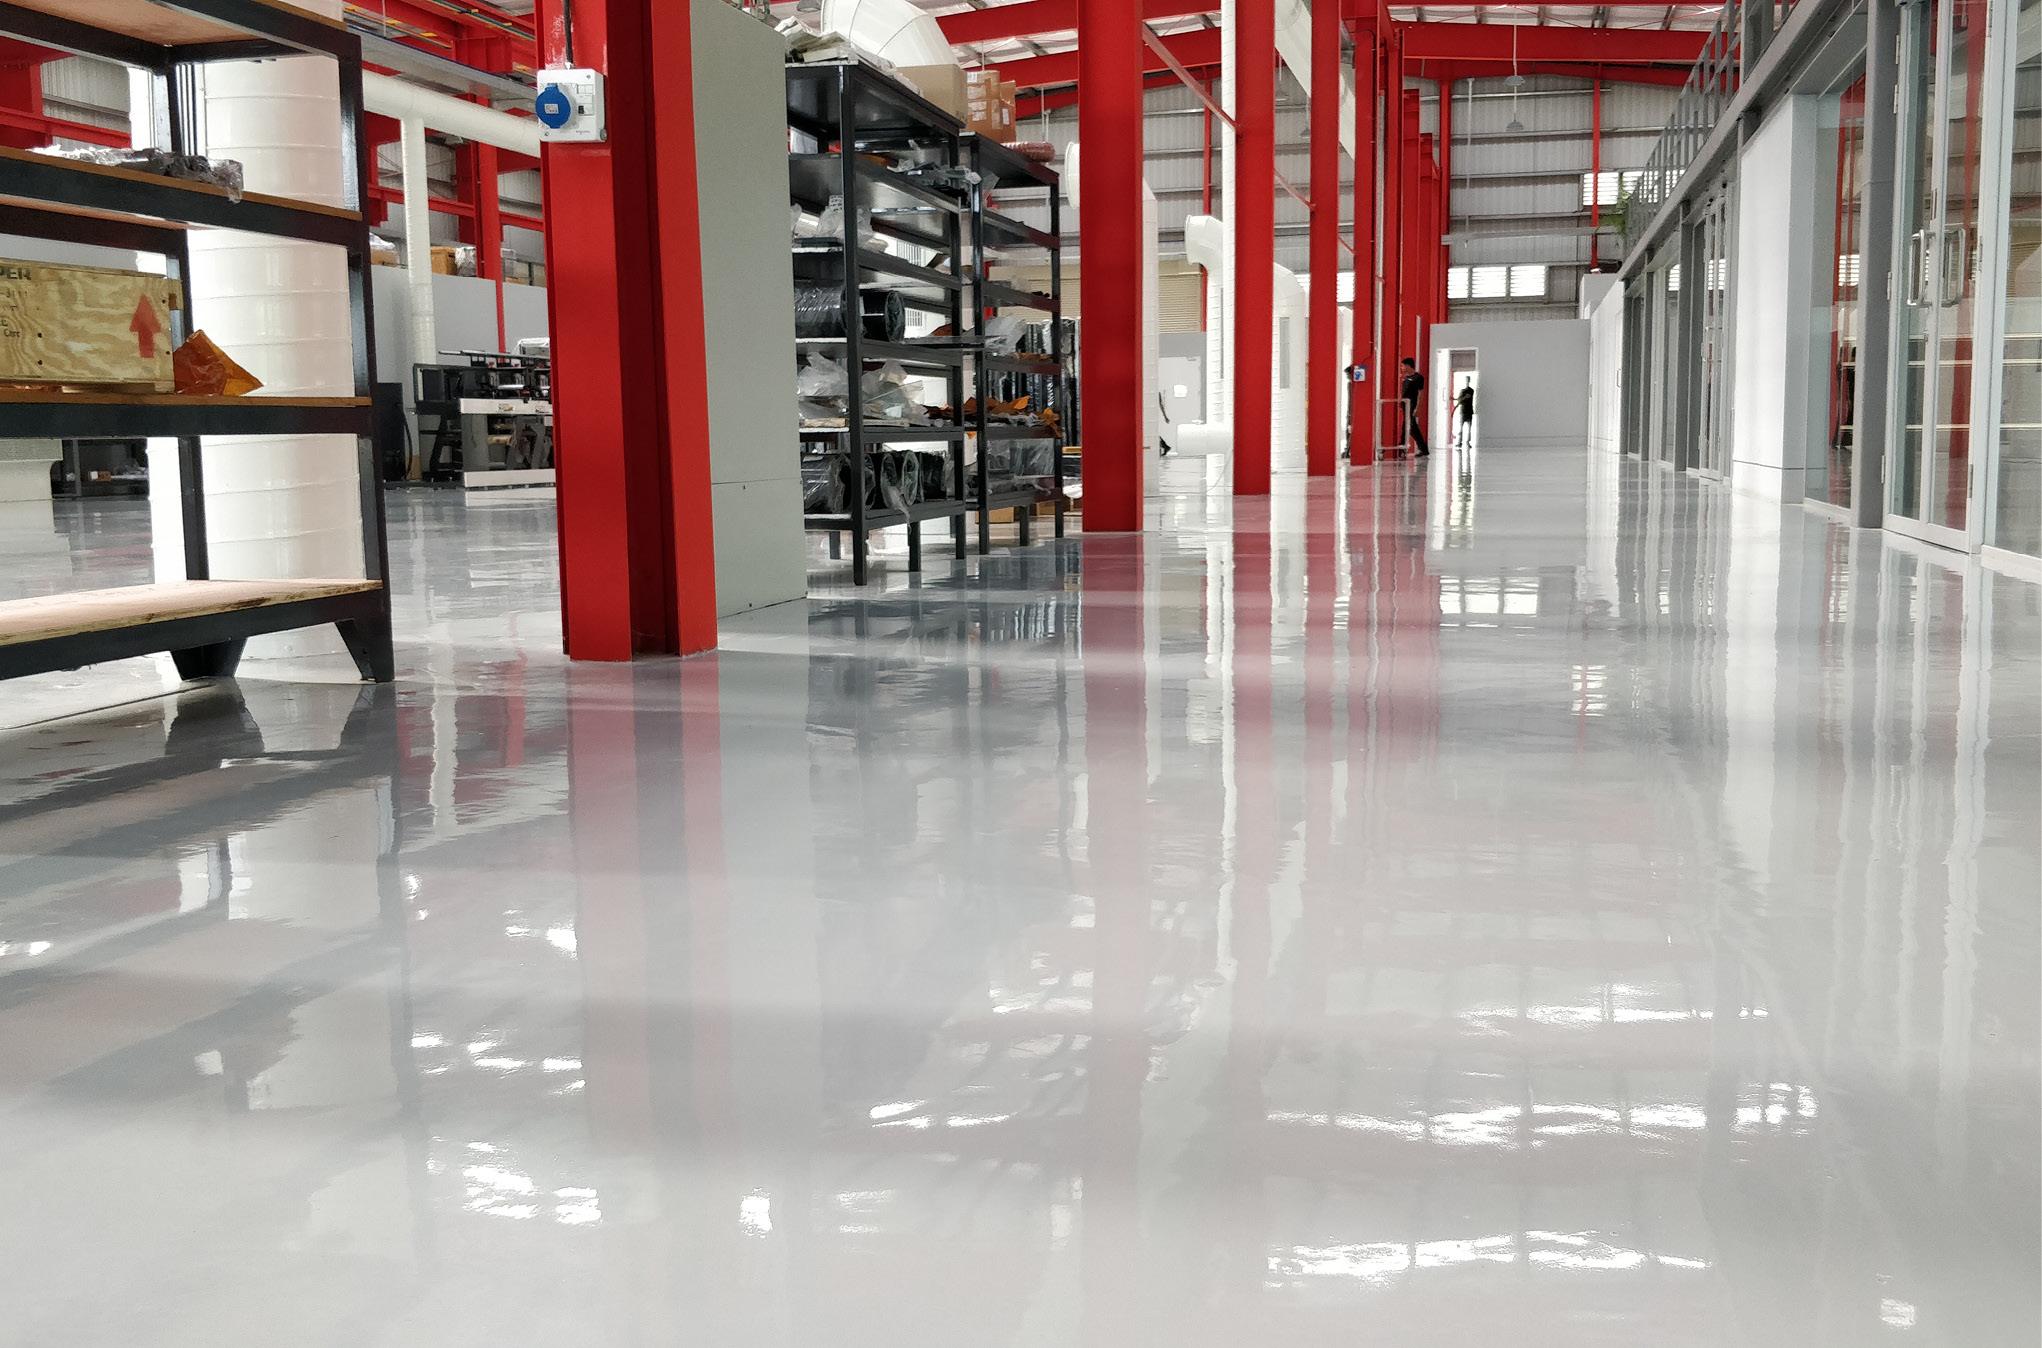 Stop the Press! Choose Suitable Flooring Materials for Your Printing Plant